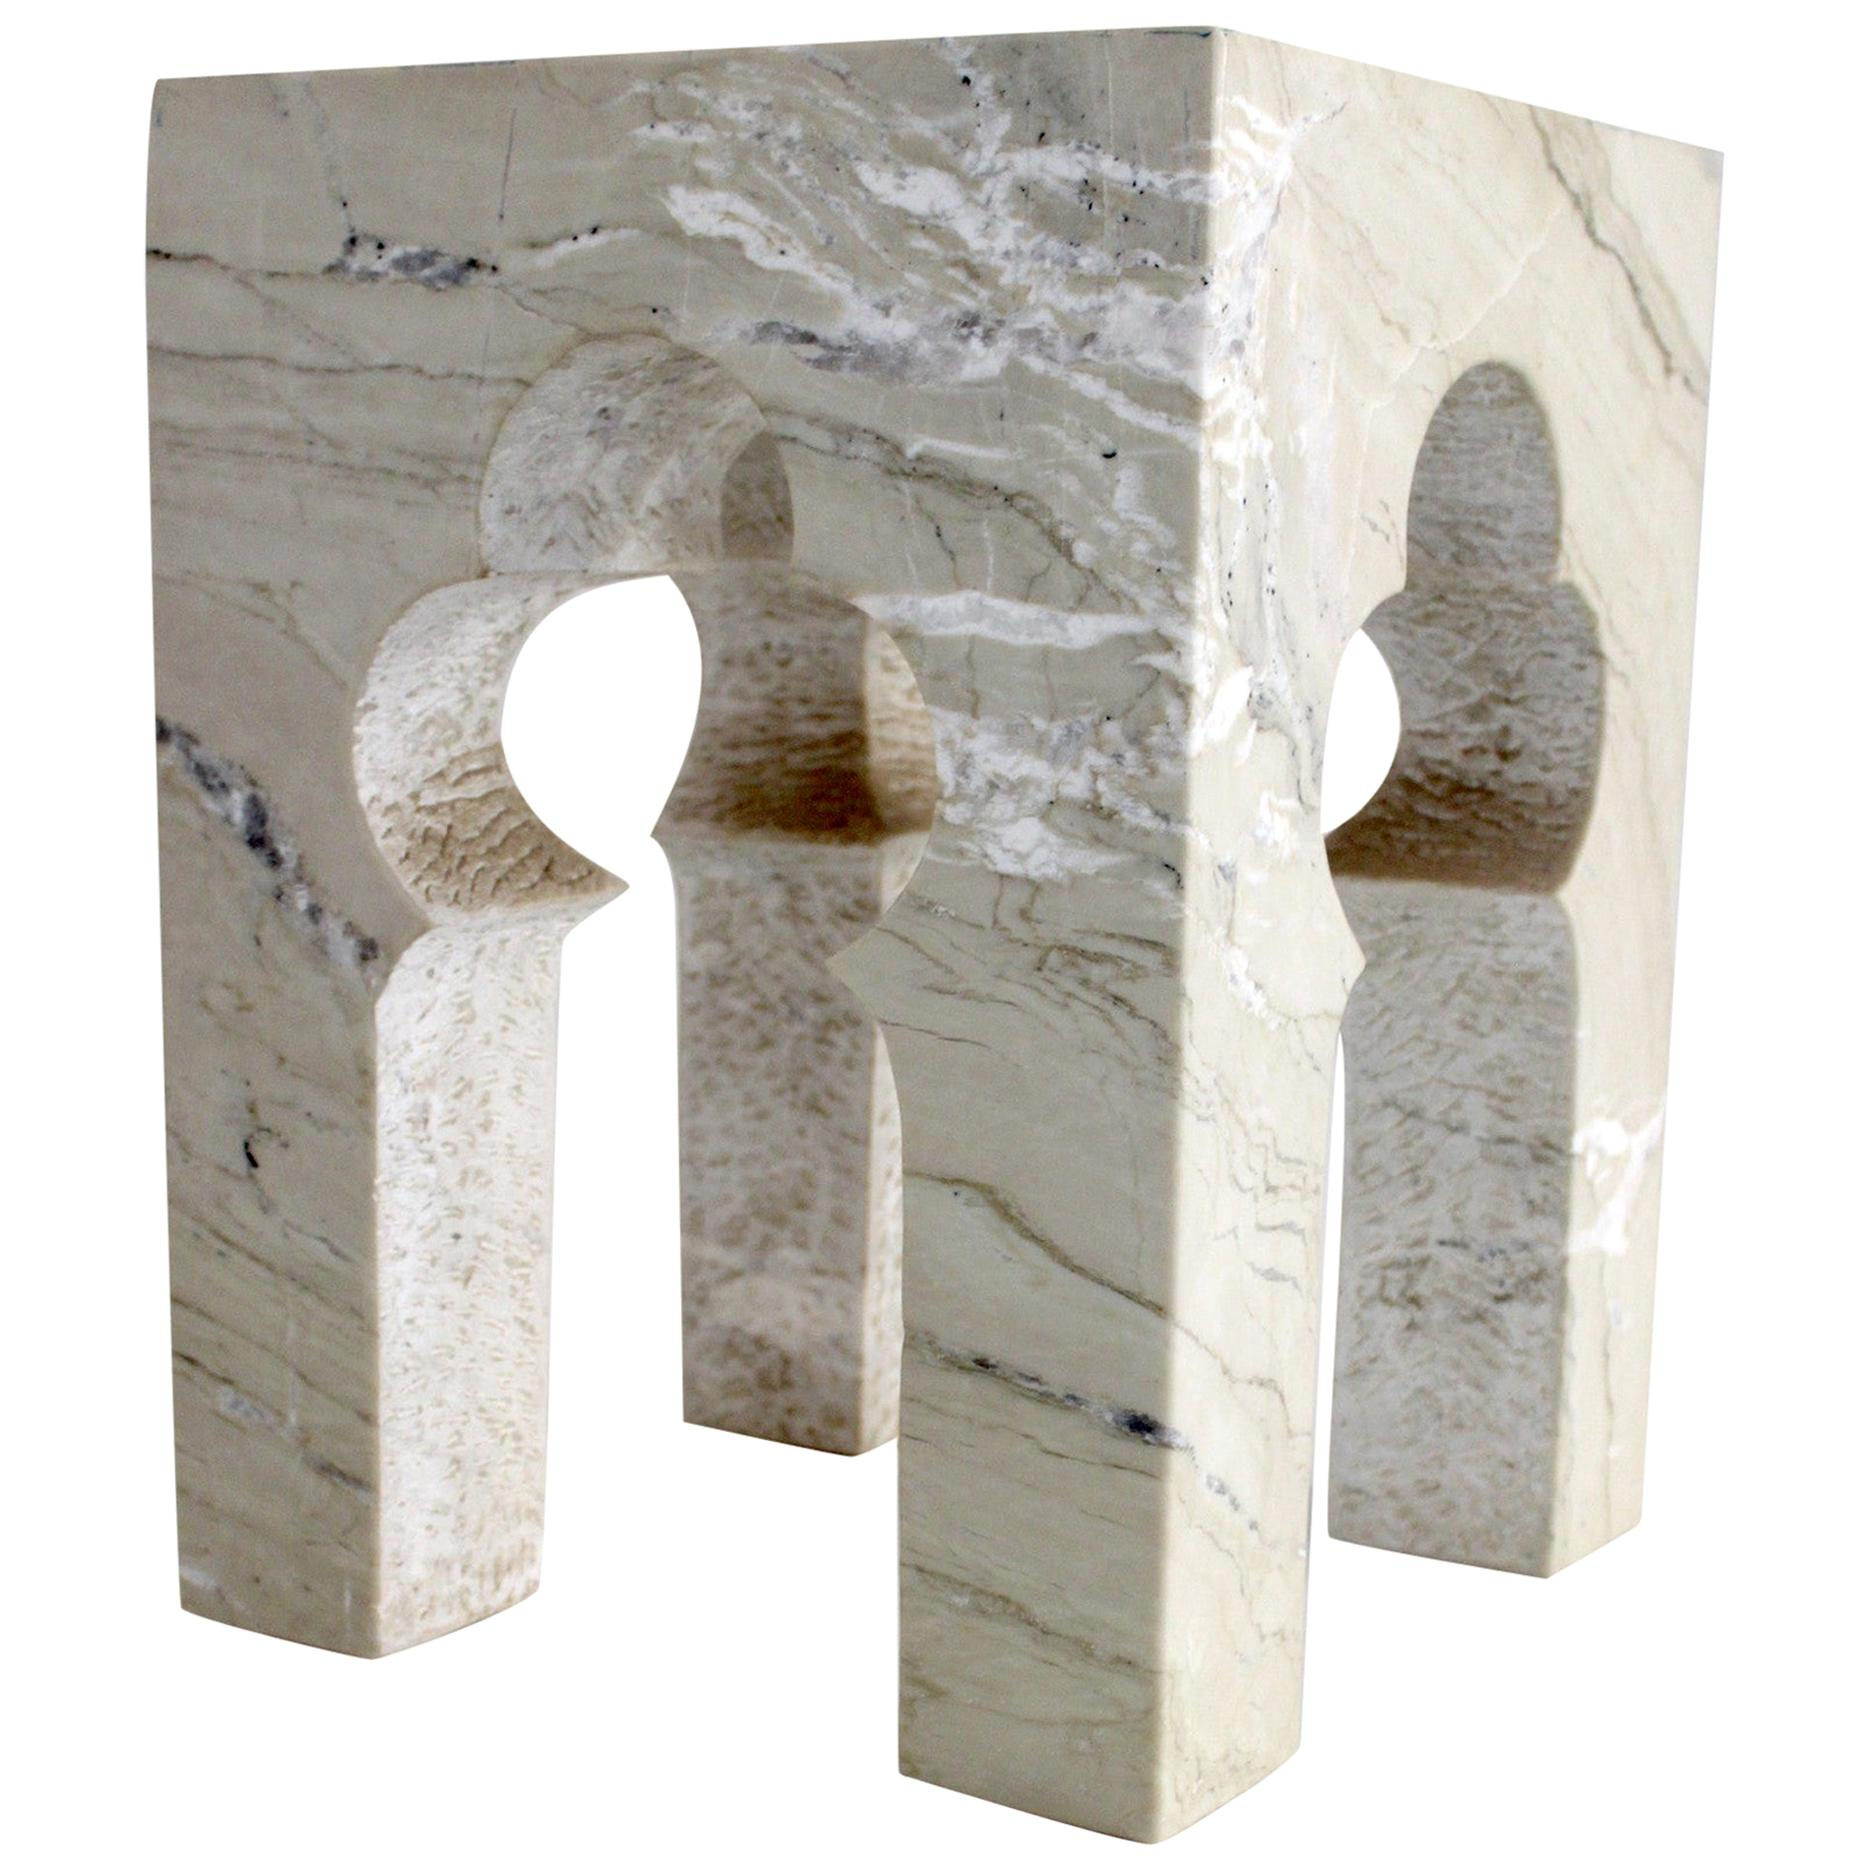 Jahangir Side Table in Katni Marble by Paul Mathieu for Stephanie Odegard